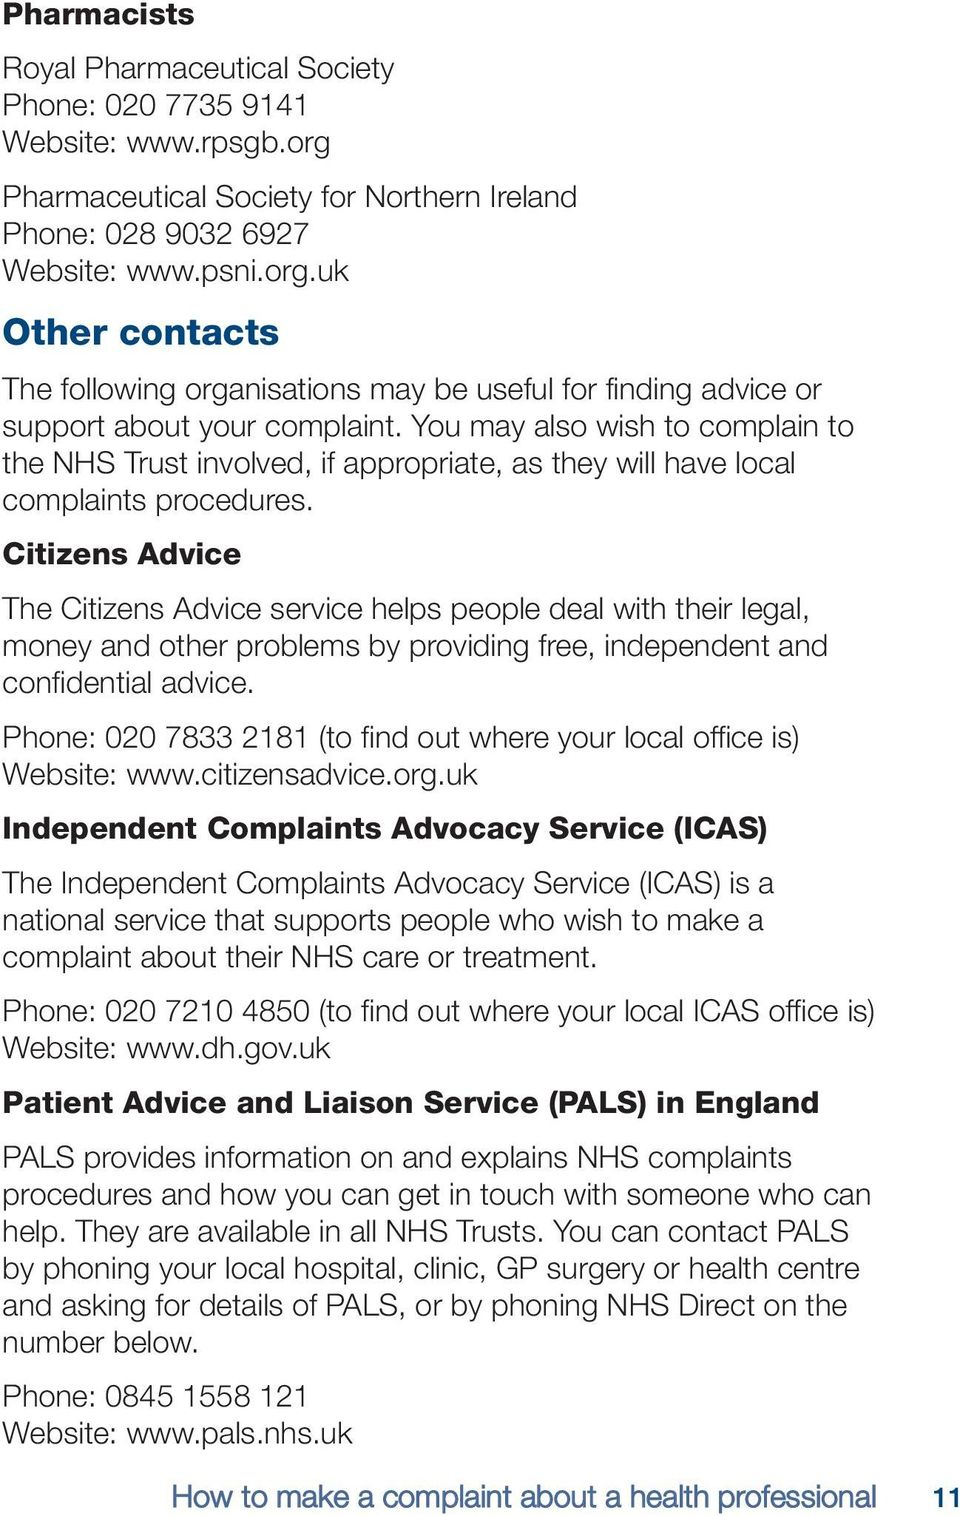 Citizens Advice The Citizens Advice service helps people deal with their legal, money and other problems by providing free, independent and confidential advice.